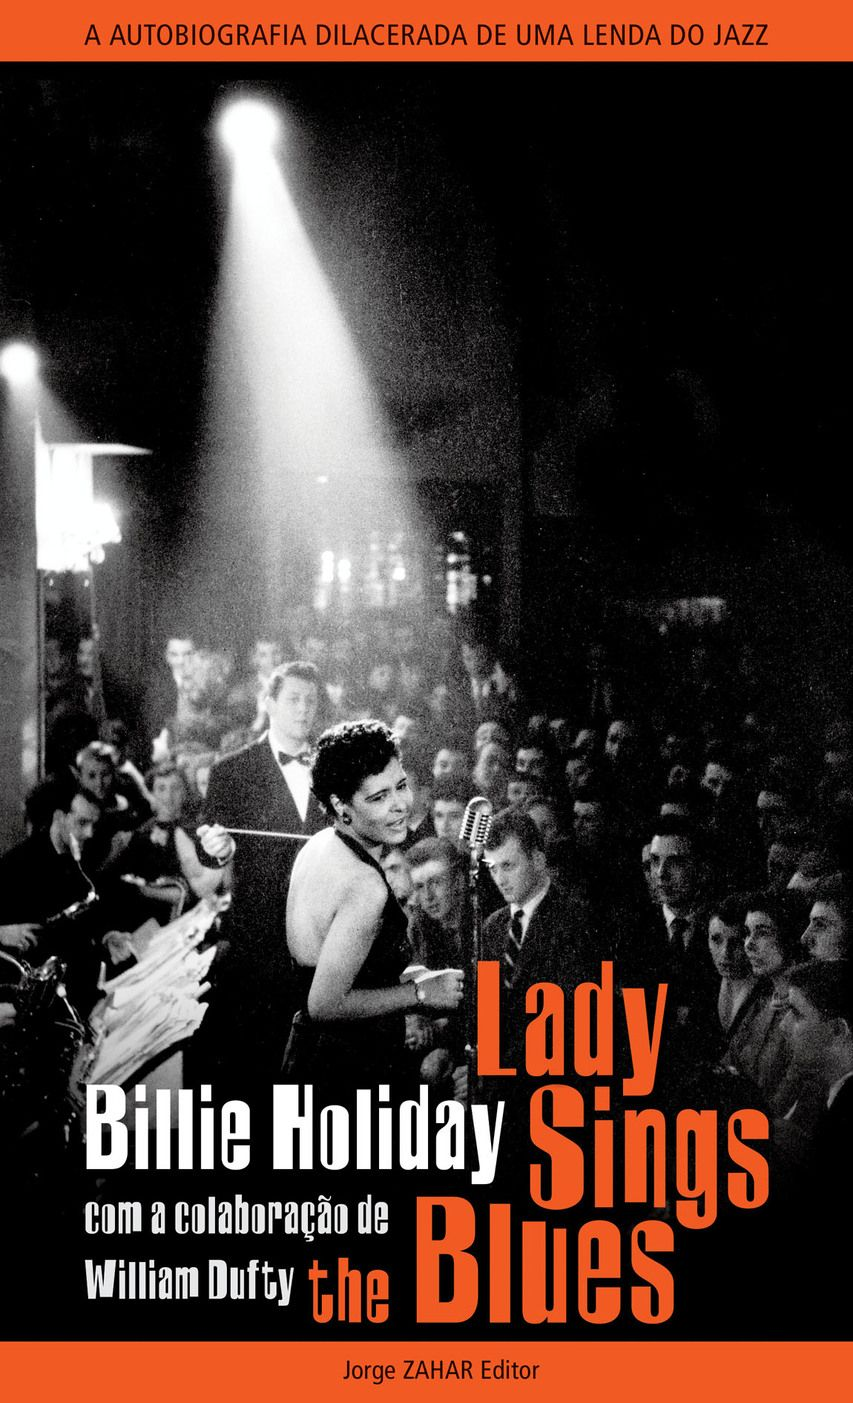 billie_holiday_livro.jpg